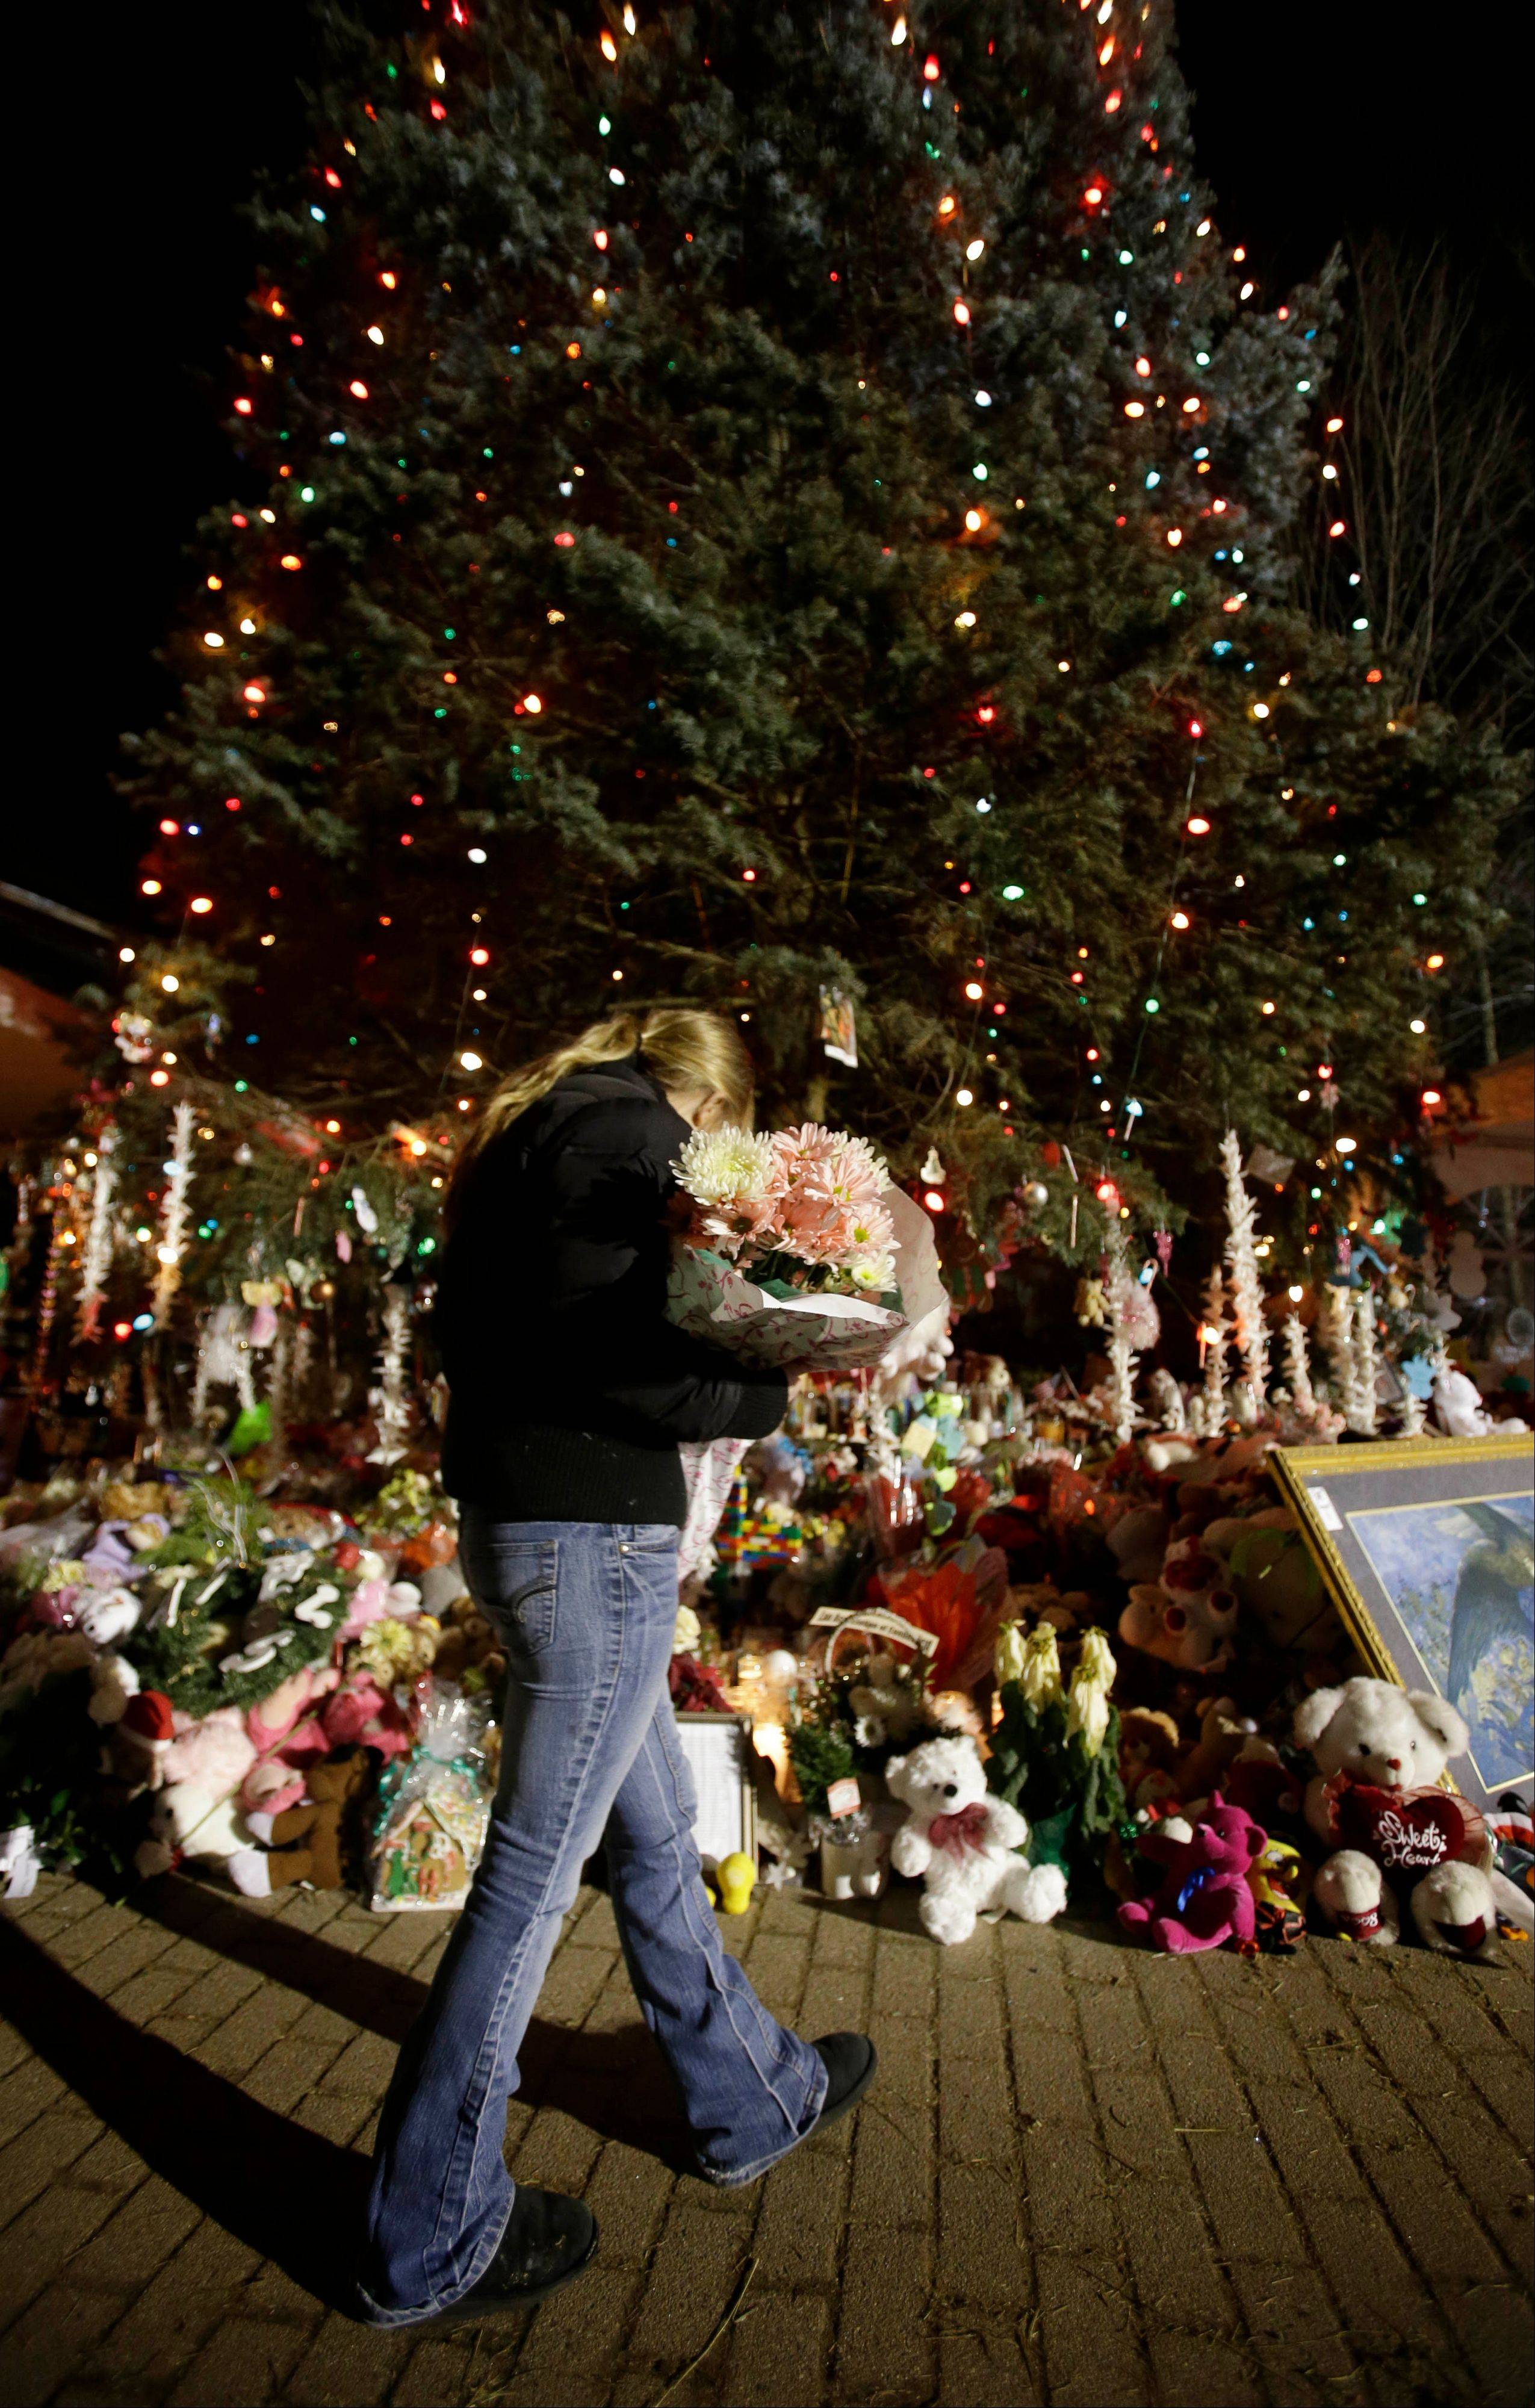 In this Thursday, Dec. 20, 2012 file photo, a woman with flowers walks past a Christmas tree which has become a memorial to the Newtown shooting victims in Newtown, Conn. In the wake of the shooting, the grieving town is trying to find meaning in Christmas.